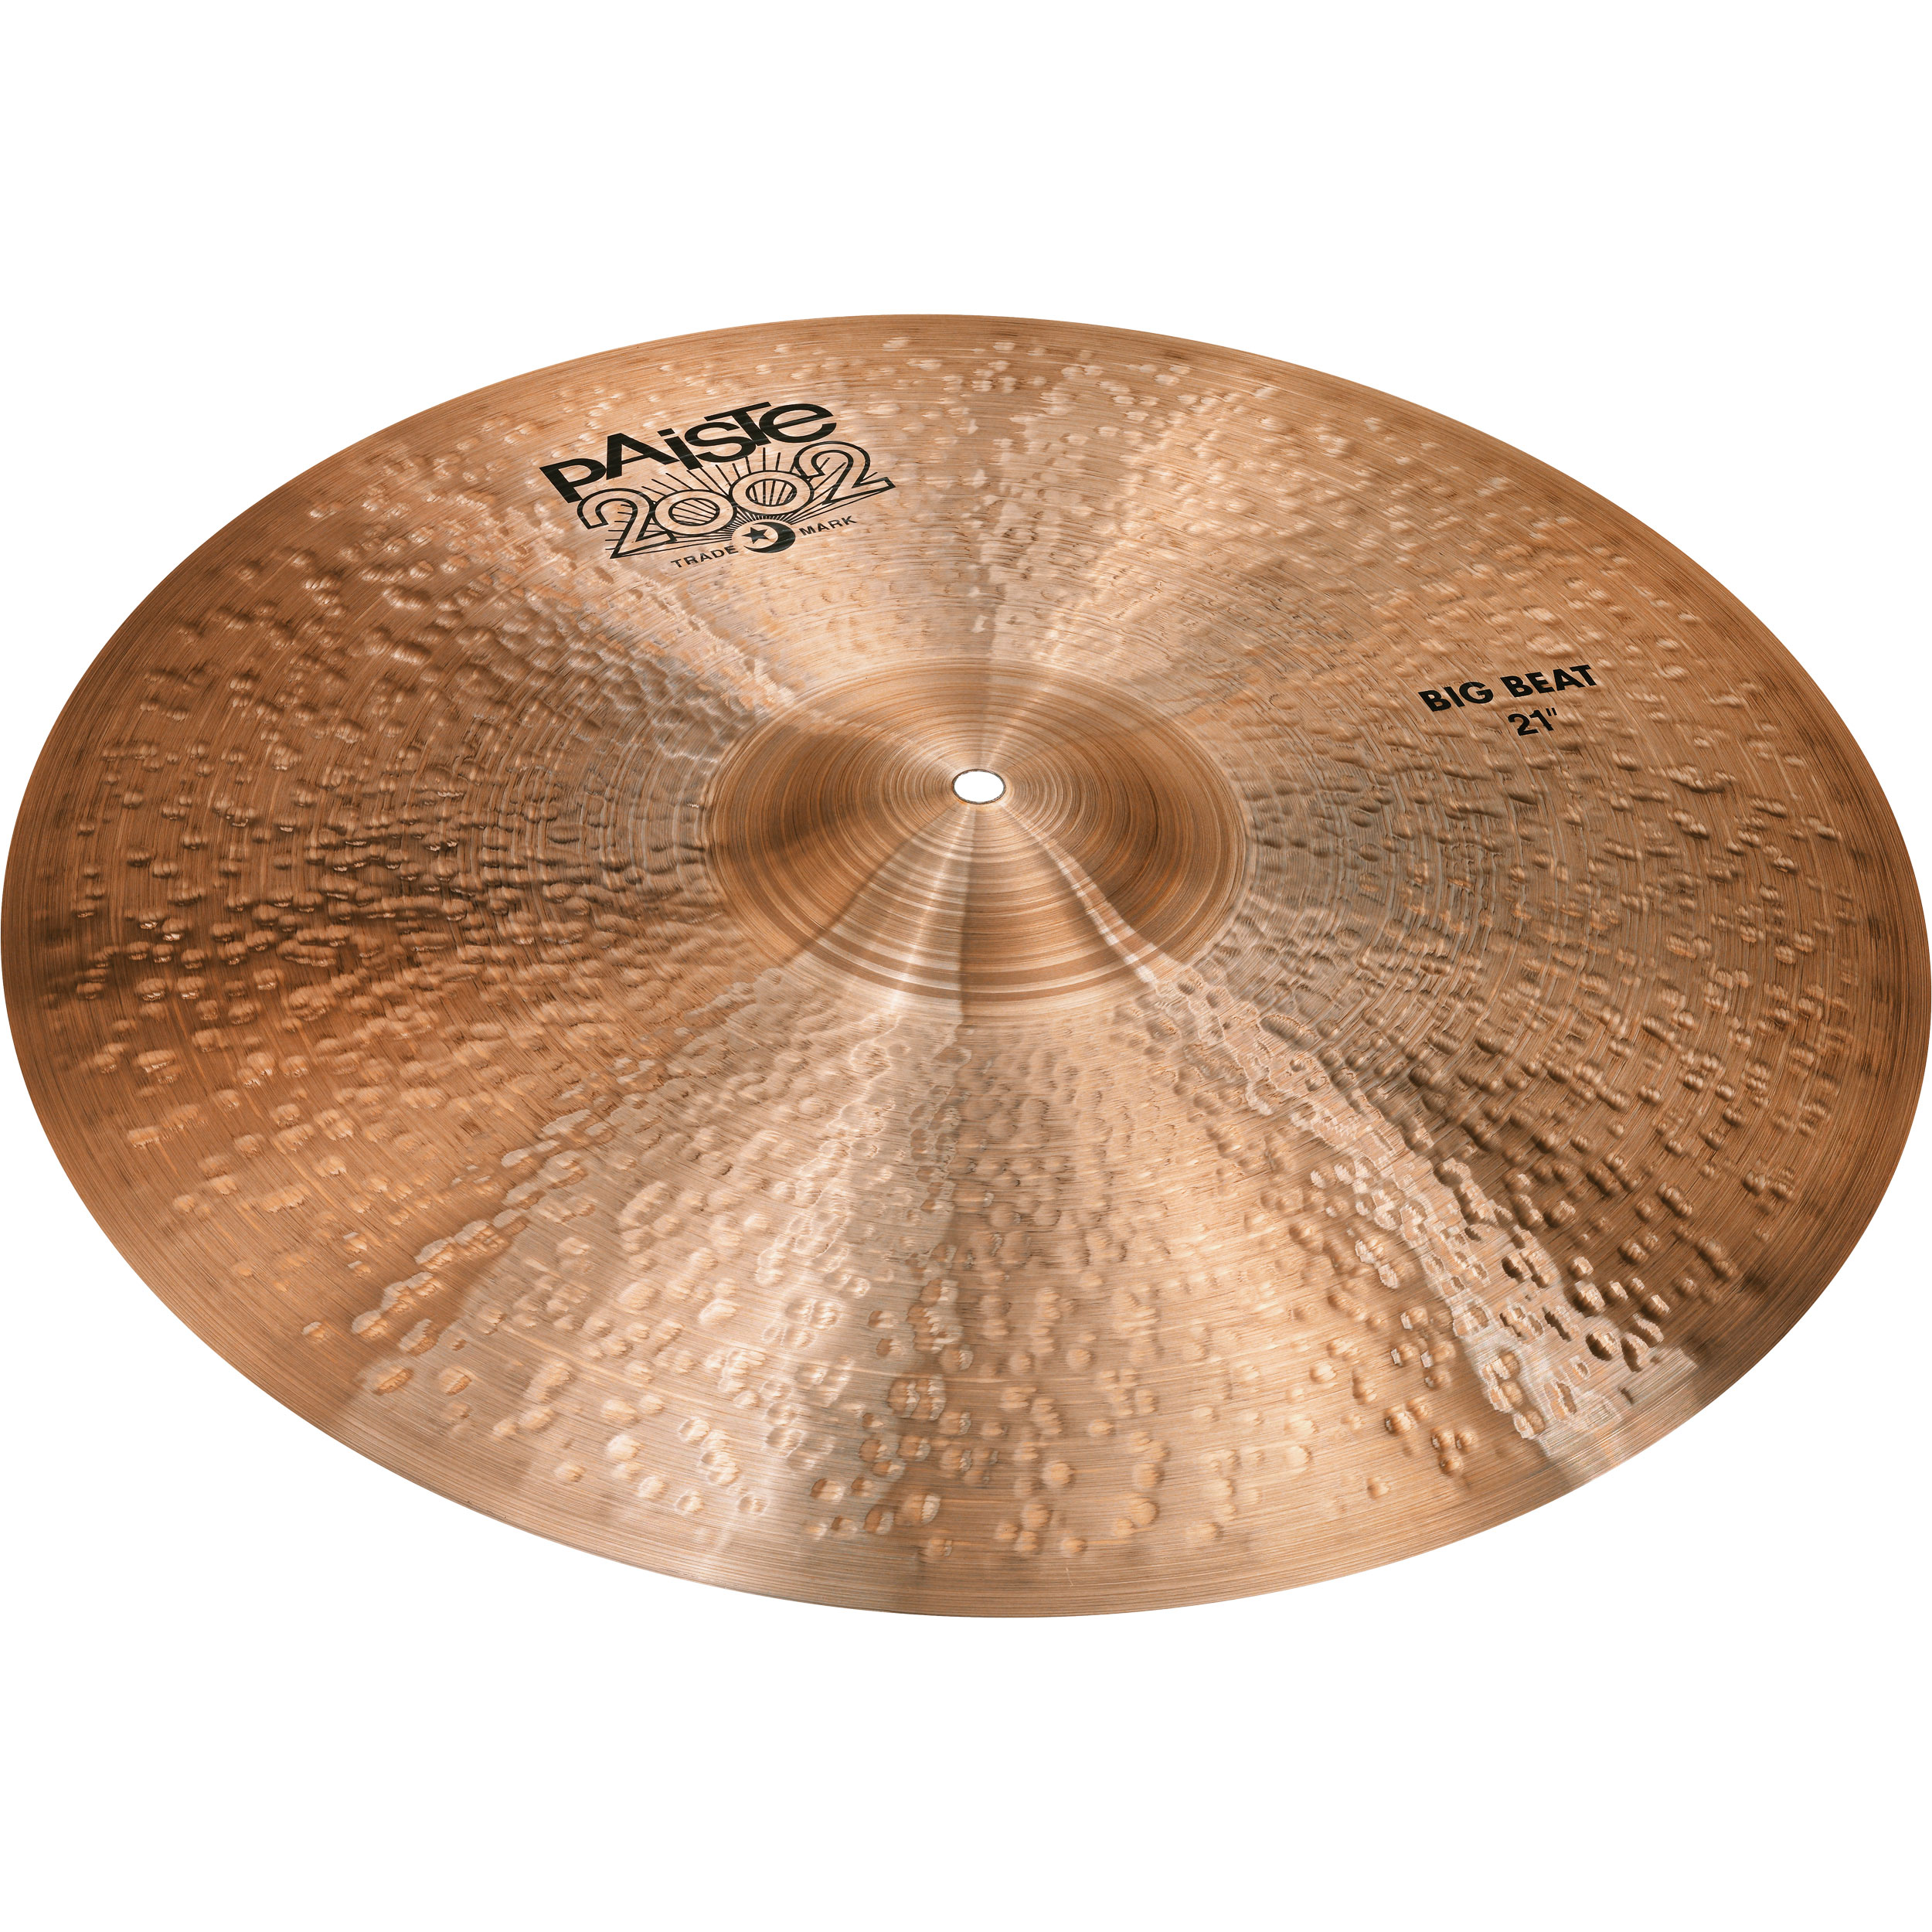 "Paiste 21"" 2002 Big Beat Cymbal"